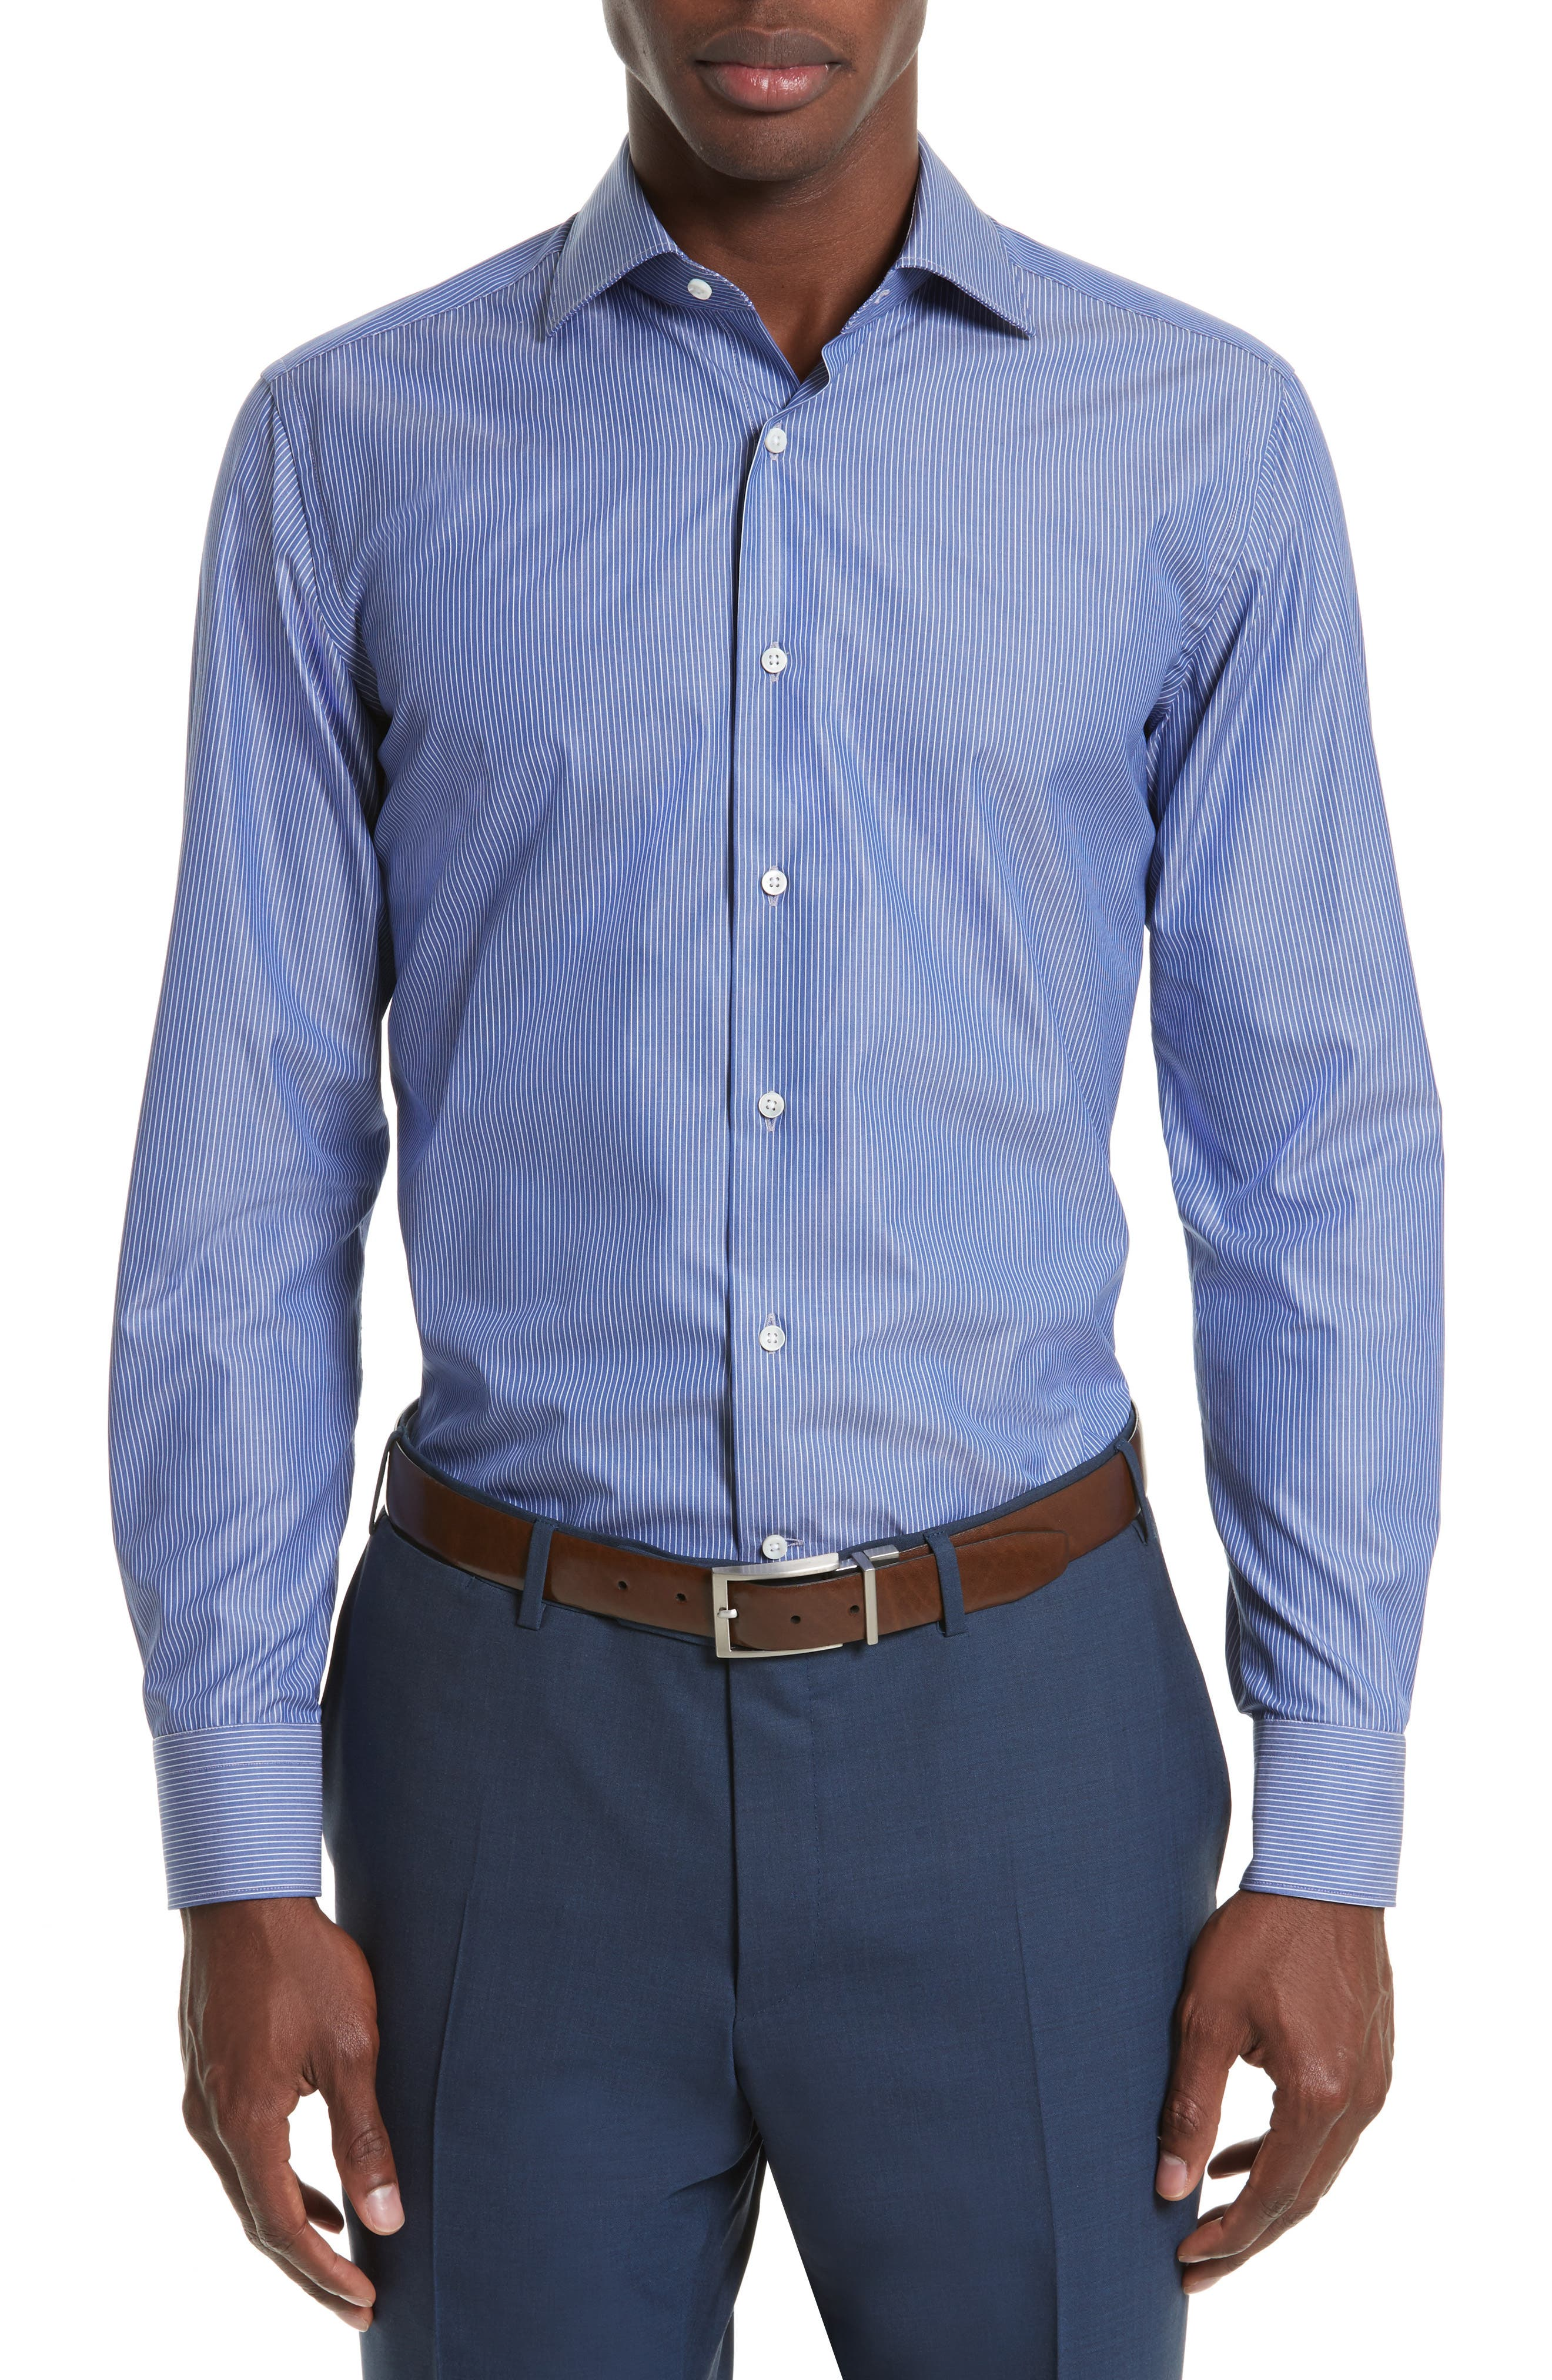 Regular Fit Stripe Dress Shirt,                         Main,                         color, 420